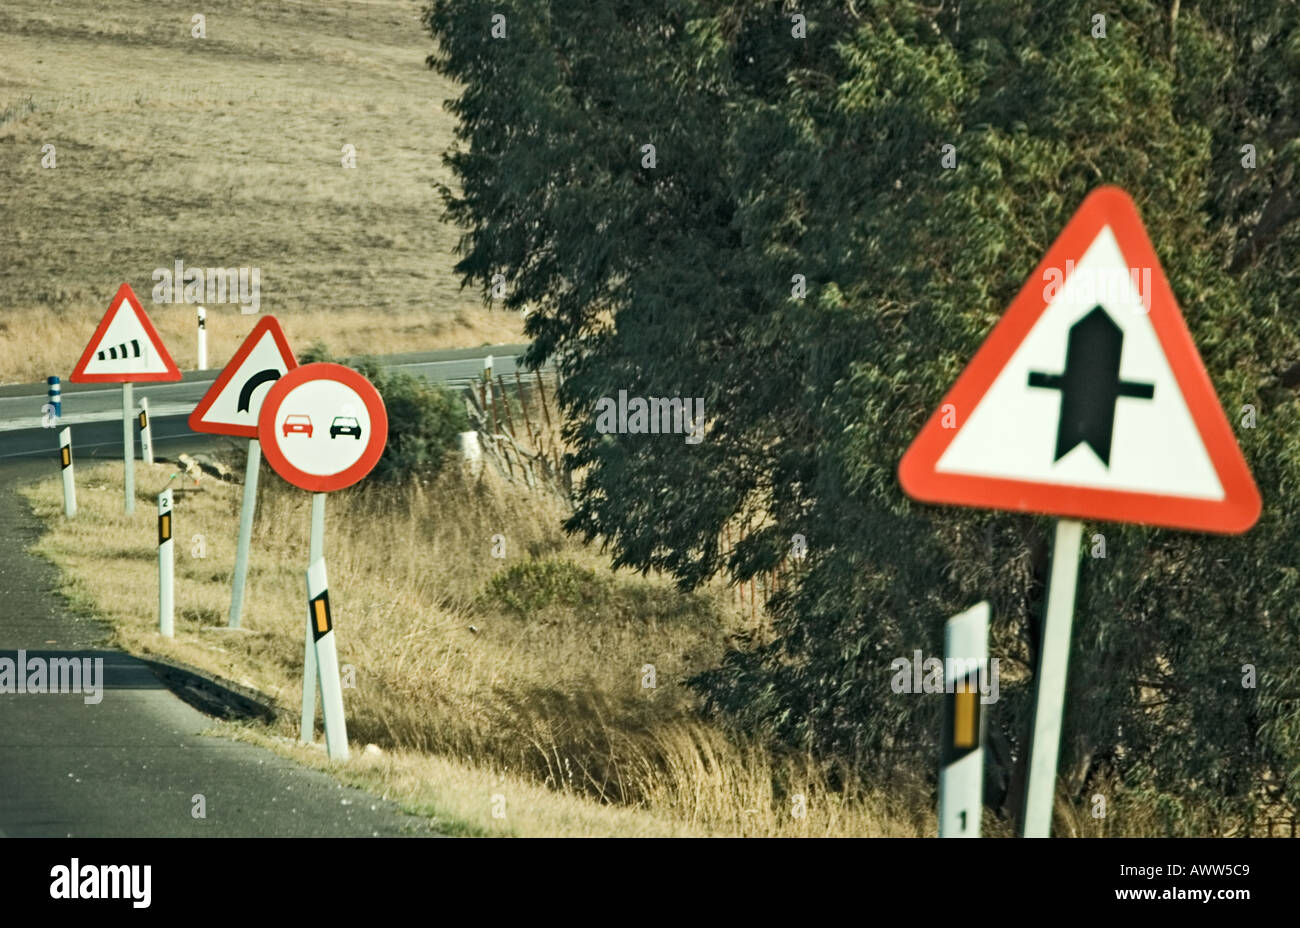 Road Furniture Traffic Signs In Andalusia Spain Stock Photo - Road sign furniture